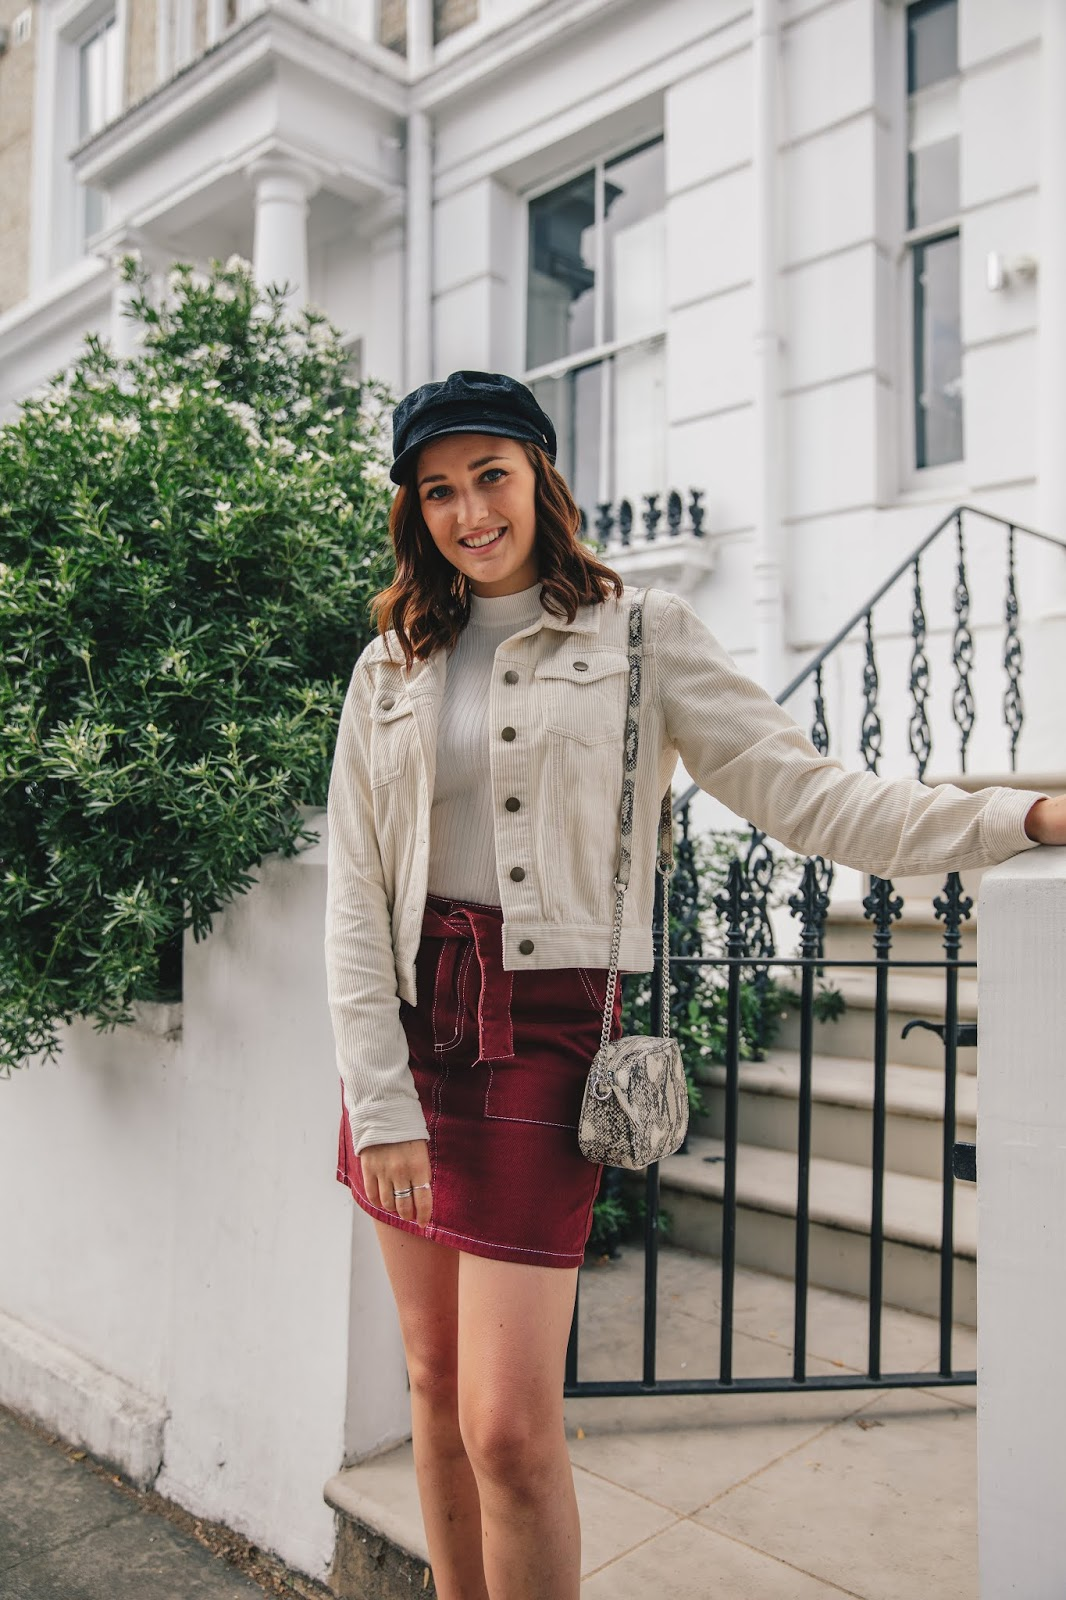 2 Looks To Try This Autumn! // Autumn Fashion Street Style Inspiration London // Lauren Rose Style Blogger // New Look